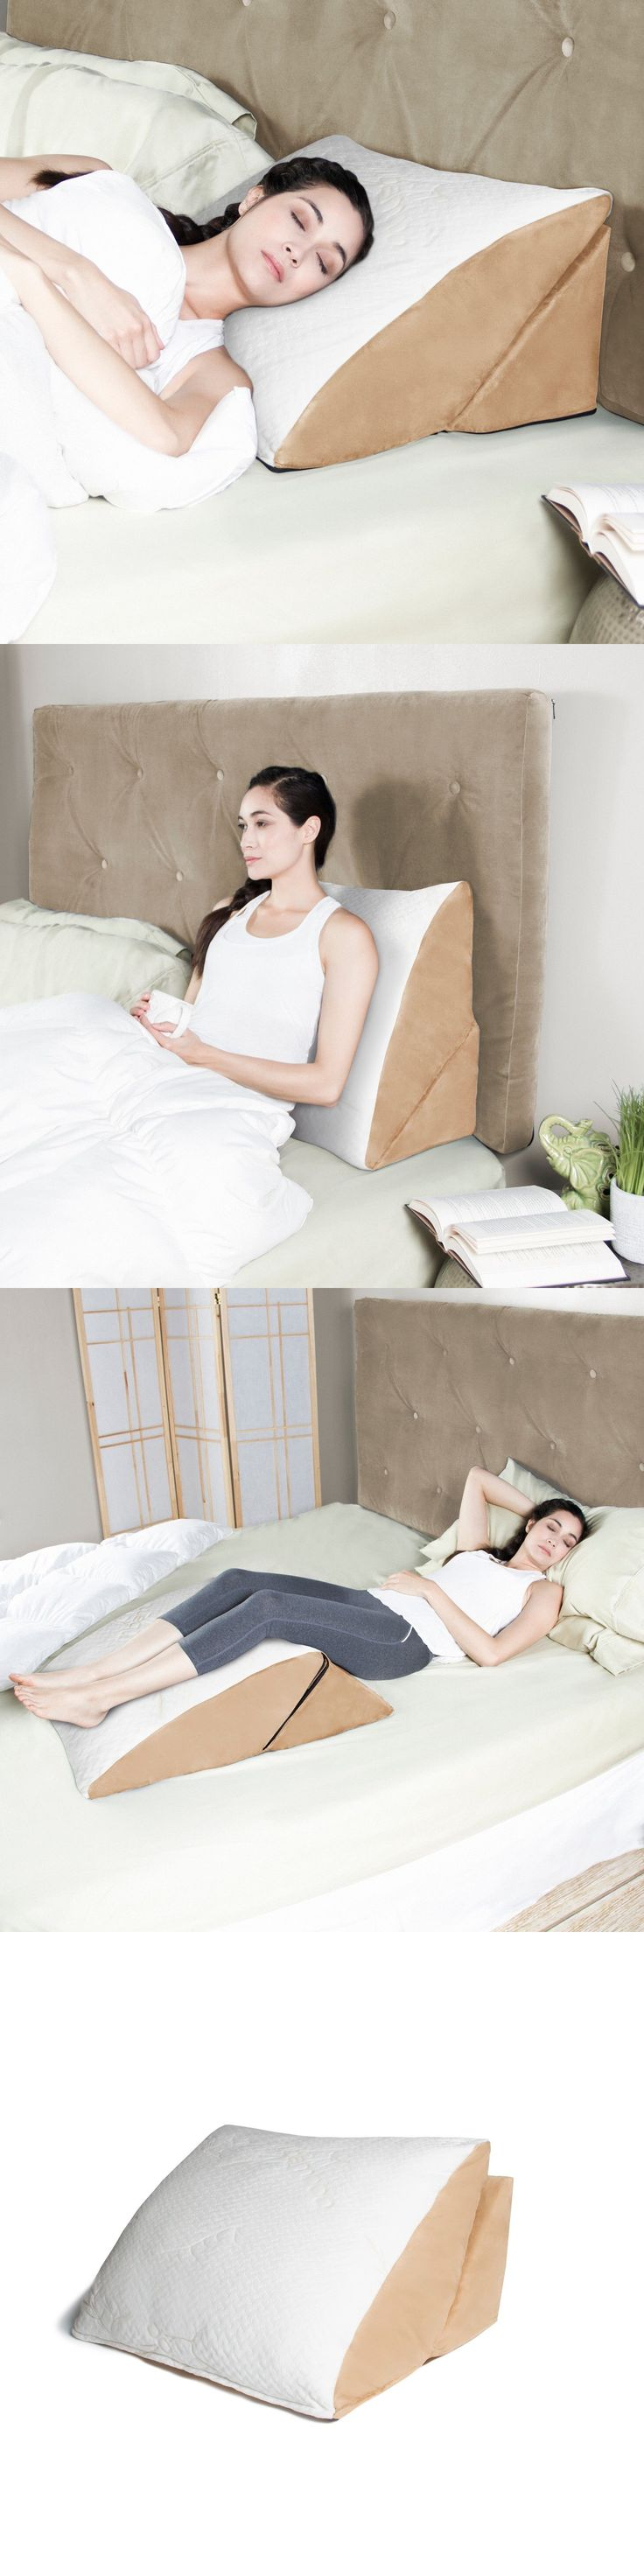 Bed wedge for legs - Wedges And Bed Positioners Avana 4 In 1 Flip Pillow Convertible Bed Wedge